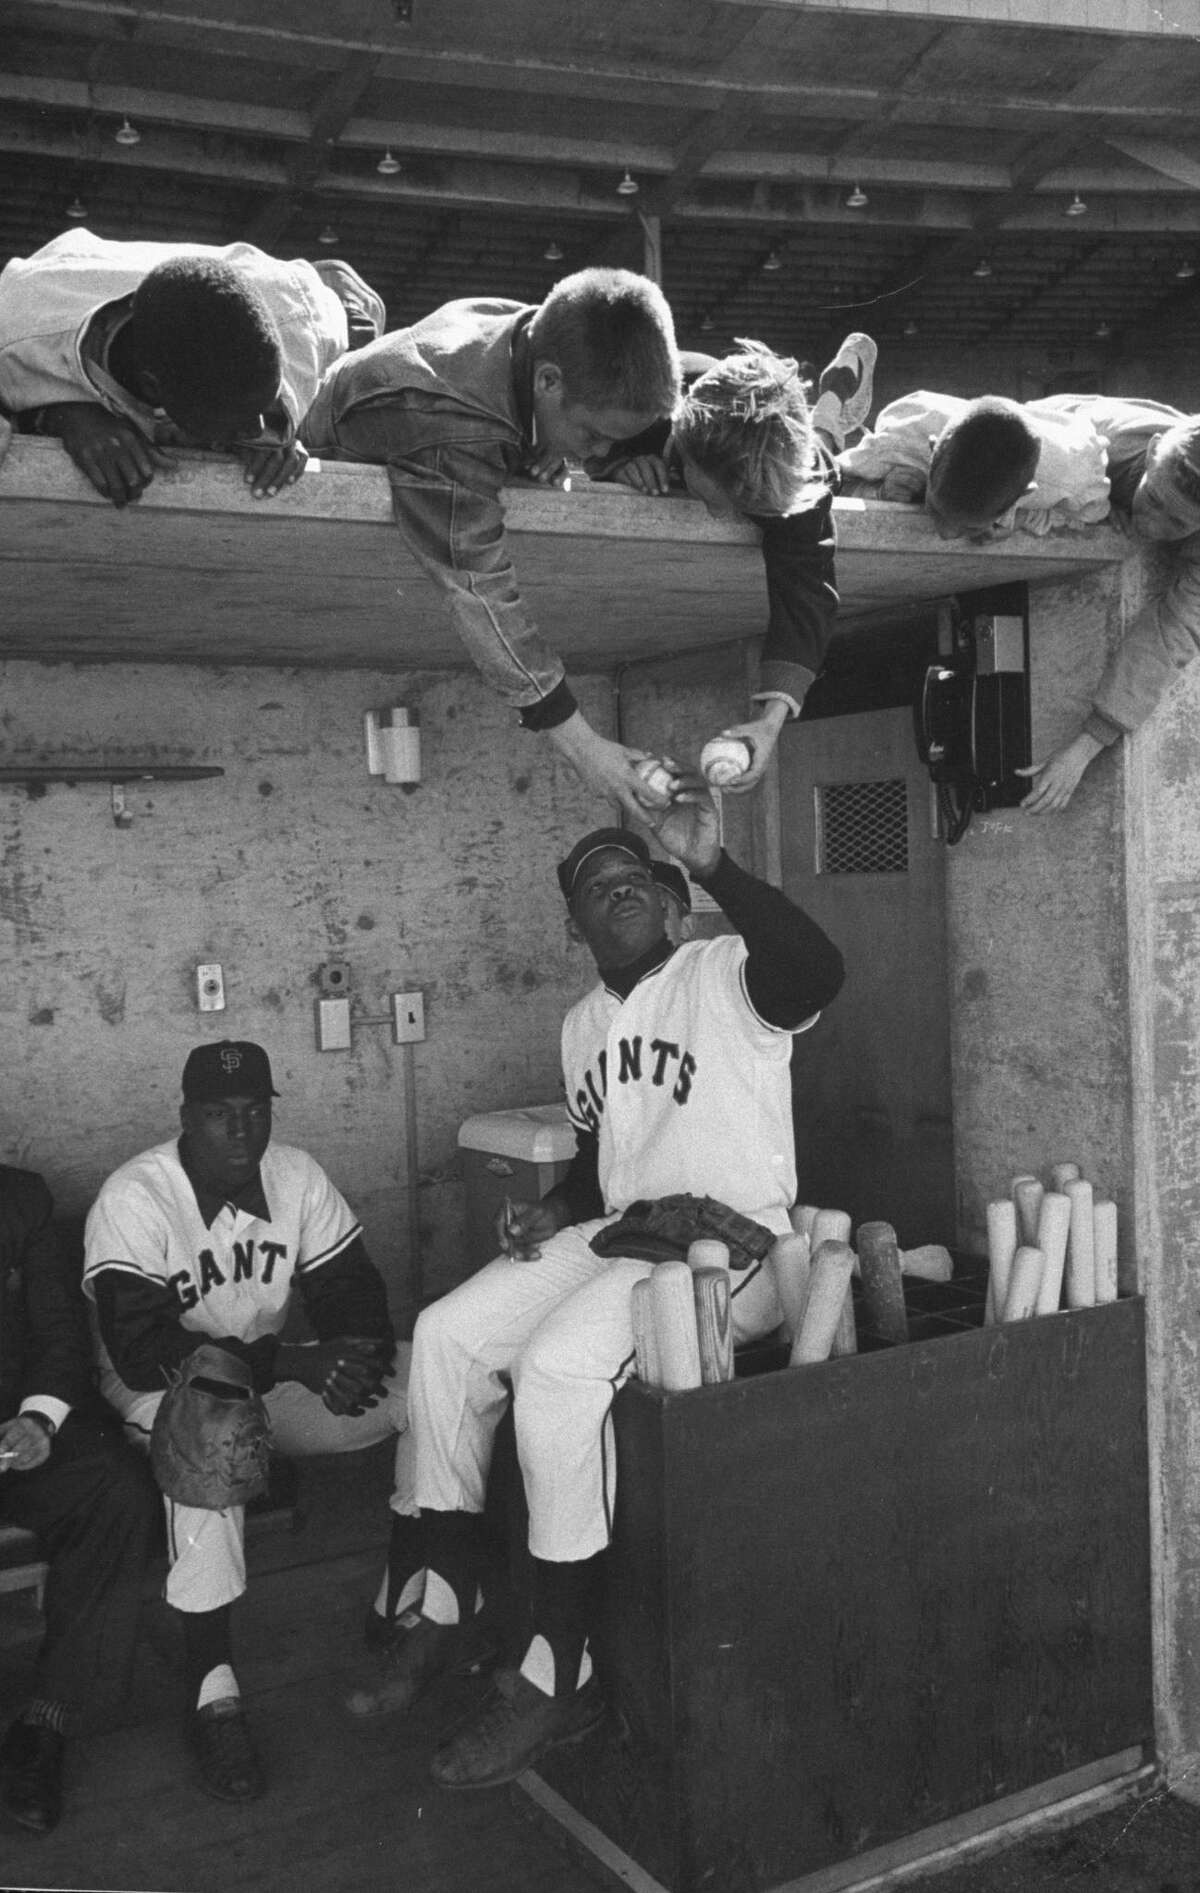 Giants baseball players Willie Mays (right) and Willie McCovey (left) sign autographs for fans while in dugout at Candlestick Park in San Francisco.